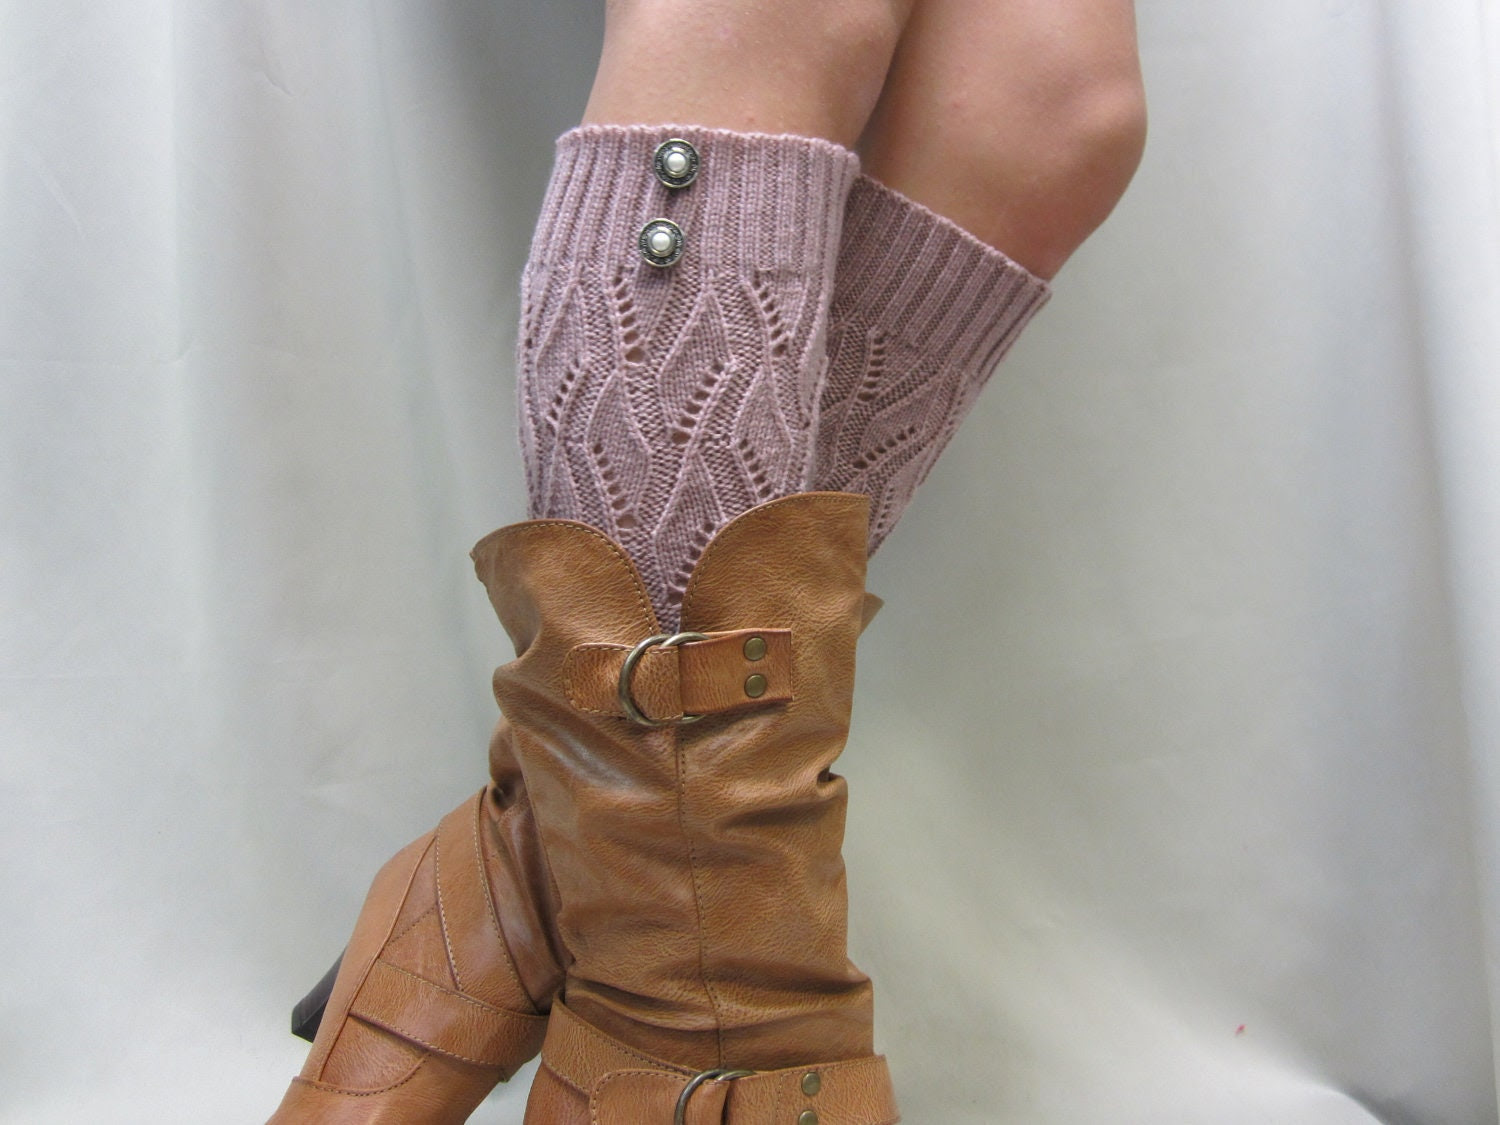 NEW Open crochet knit leg warmers MAUVE  / womens leaf knit pattern  great with cowboy boots by Catherine Cole Studio legwarmers